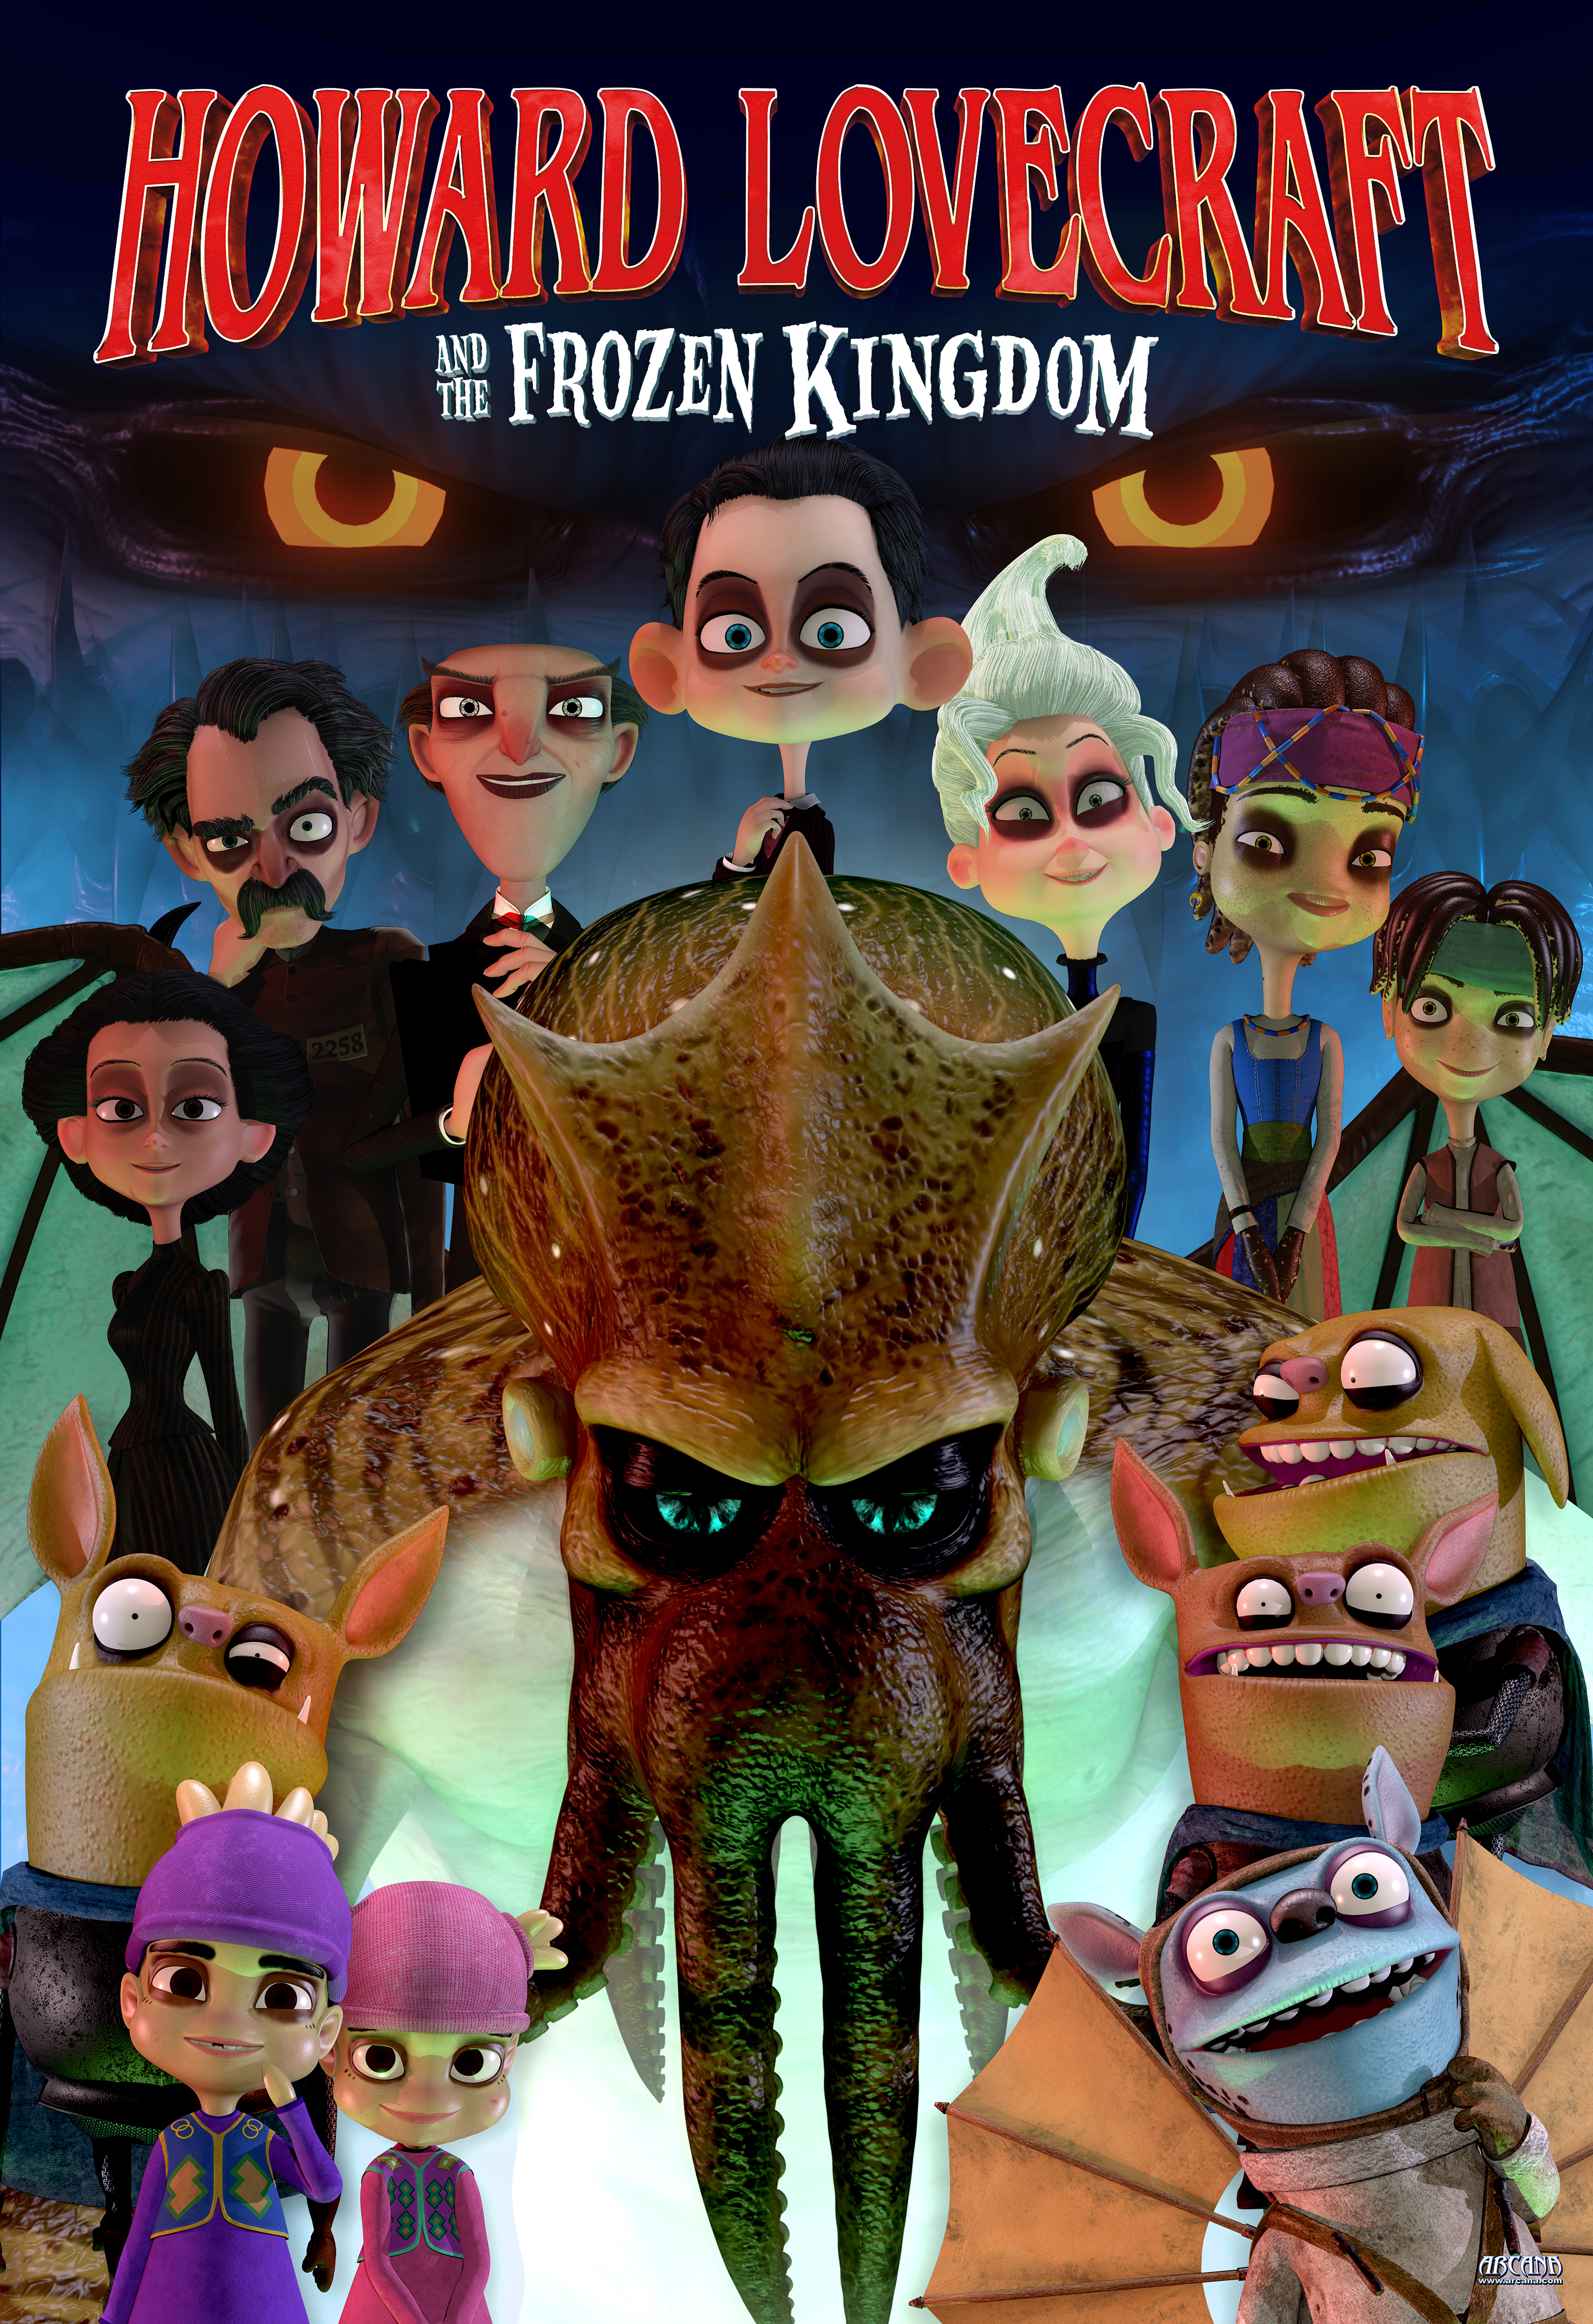 image Howard Lovecraft and the Frozen Kingdom Watch Full Movie Free Online